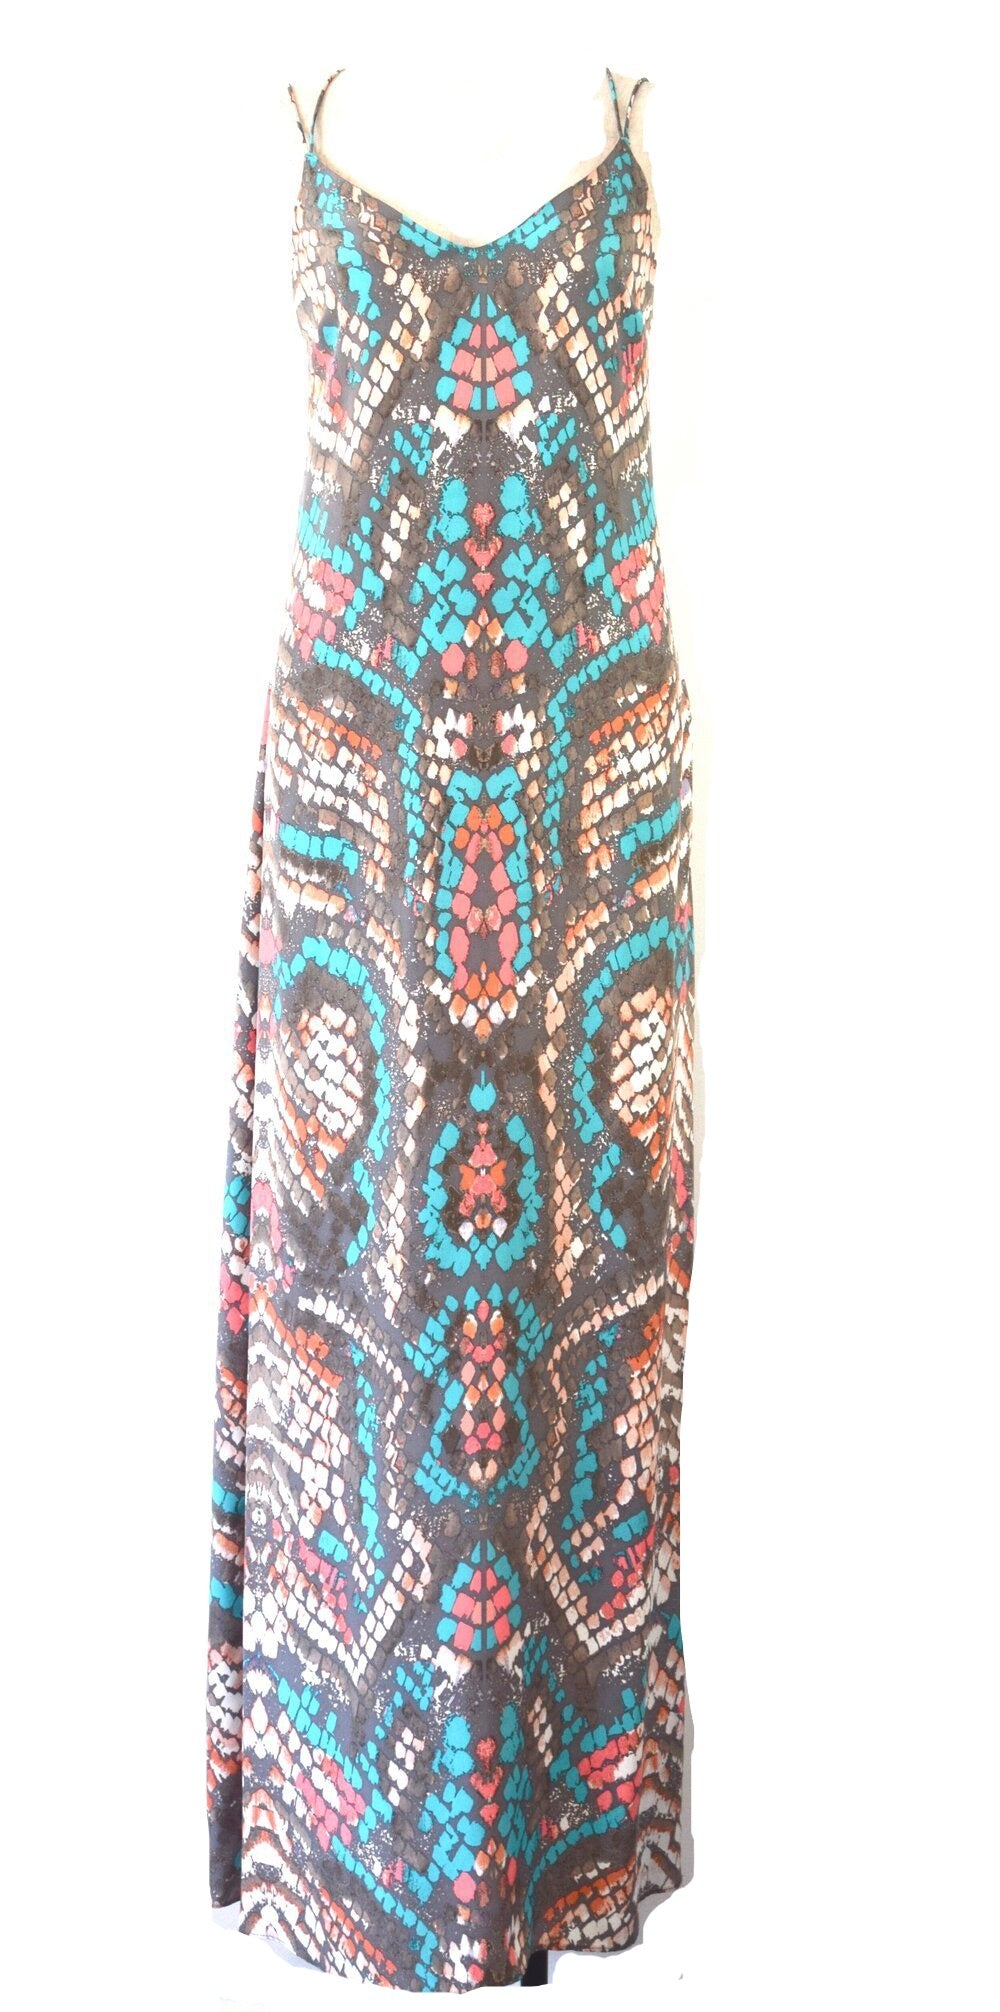 Spaghetti Straps Printed Maxi Dress | Size Small